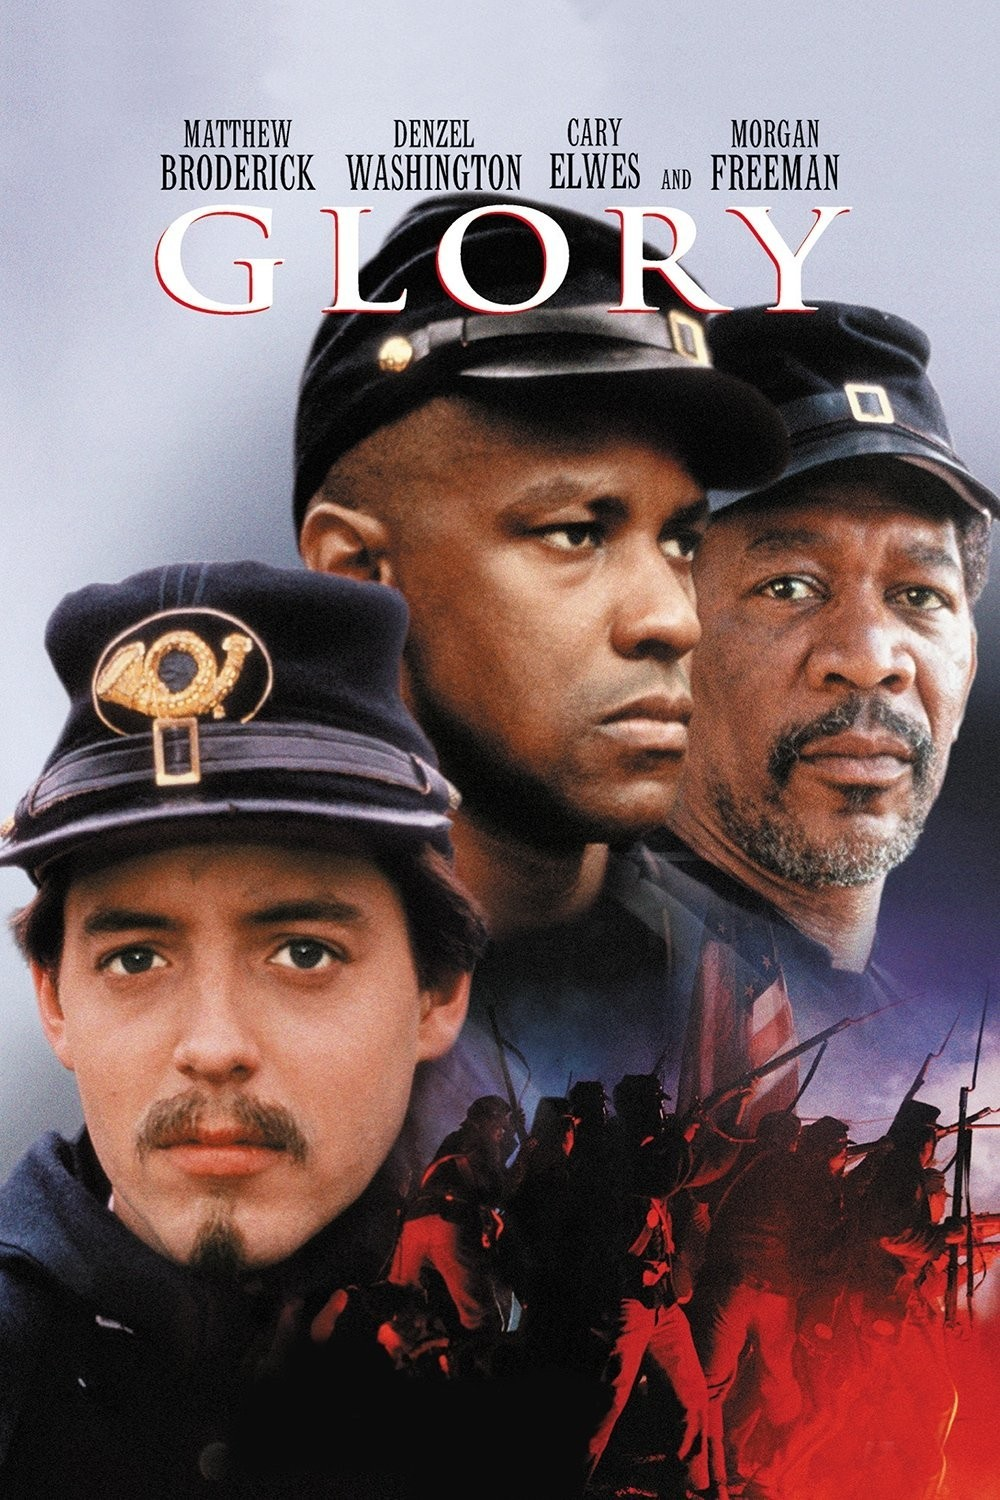 platypus ldquo to unite the many rdquo an interview adolph l reed jr released in 1989 the movie glory depicted the boston abolitionist robert gould shaw s leadership of